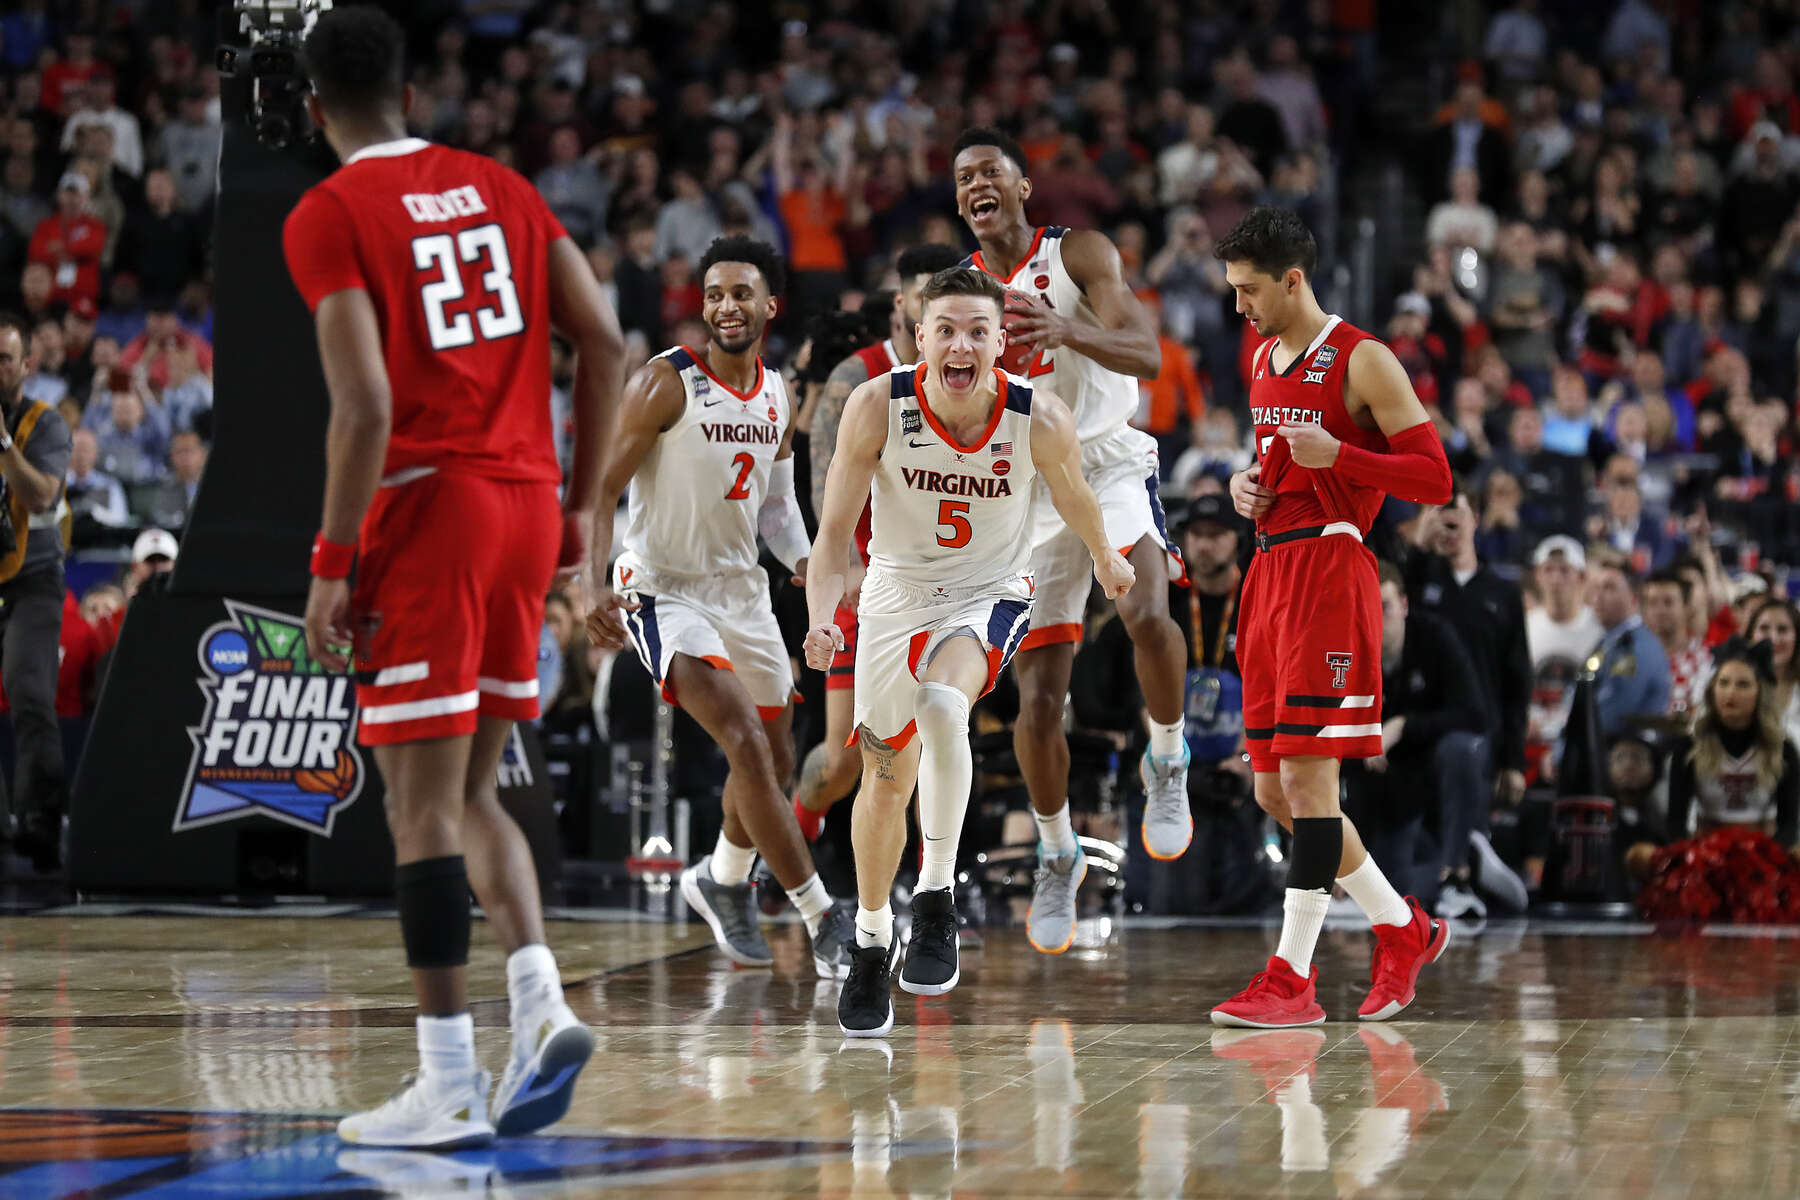 University of Virginia's Kyle Guy celebrates after defeating Texas Tech during Monday's NCAA tournament national championship basketball game at U.S. Bank Stadium in Minneapolis April 8, 2019.